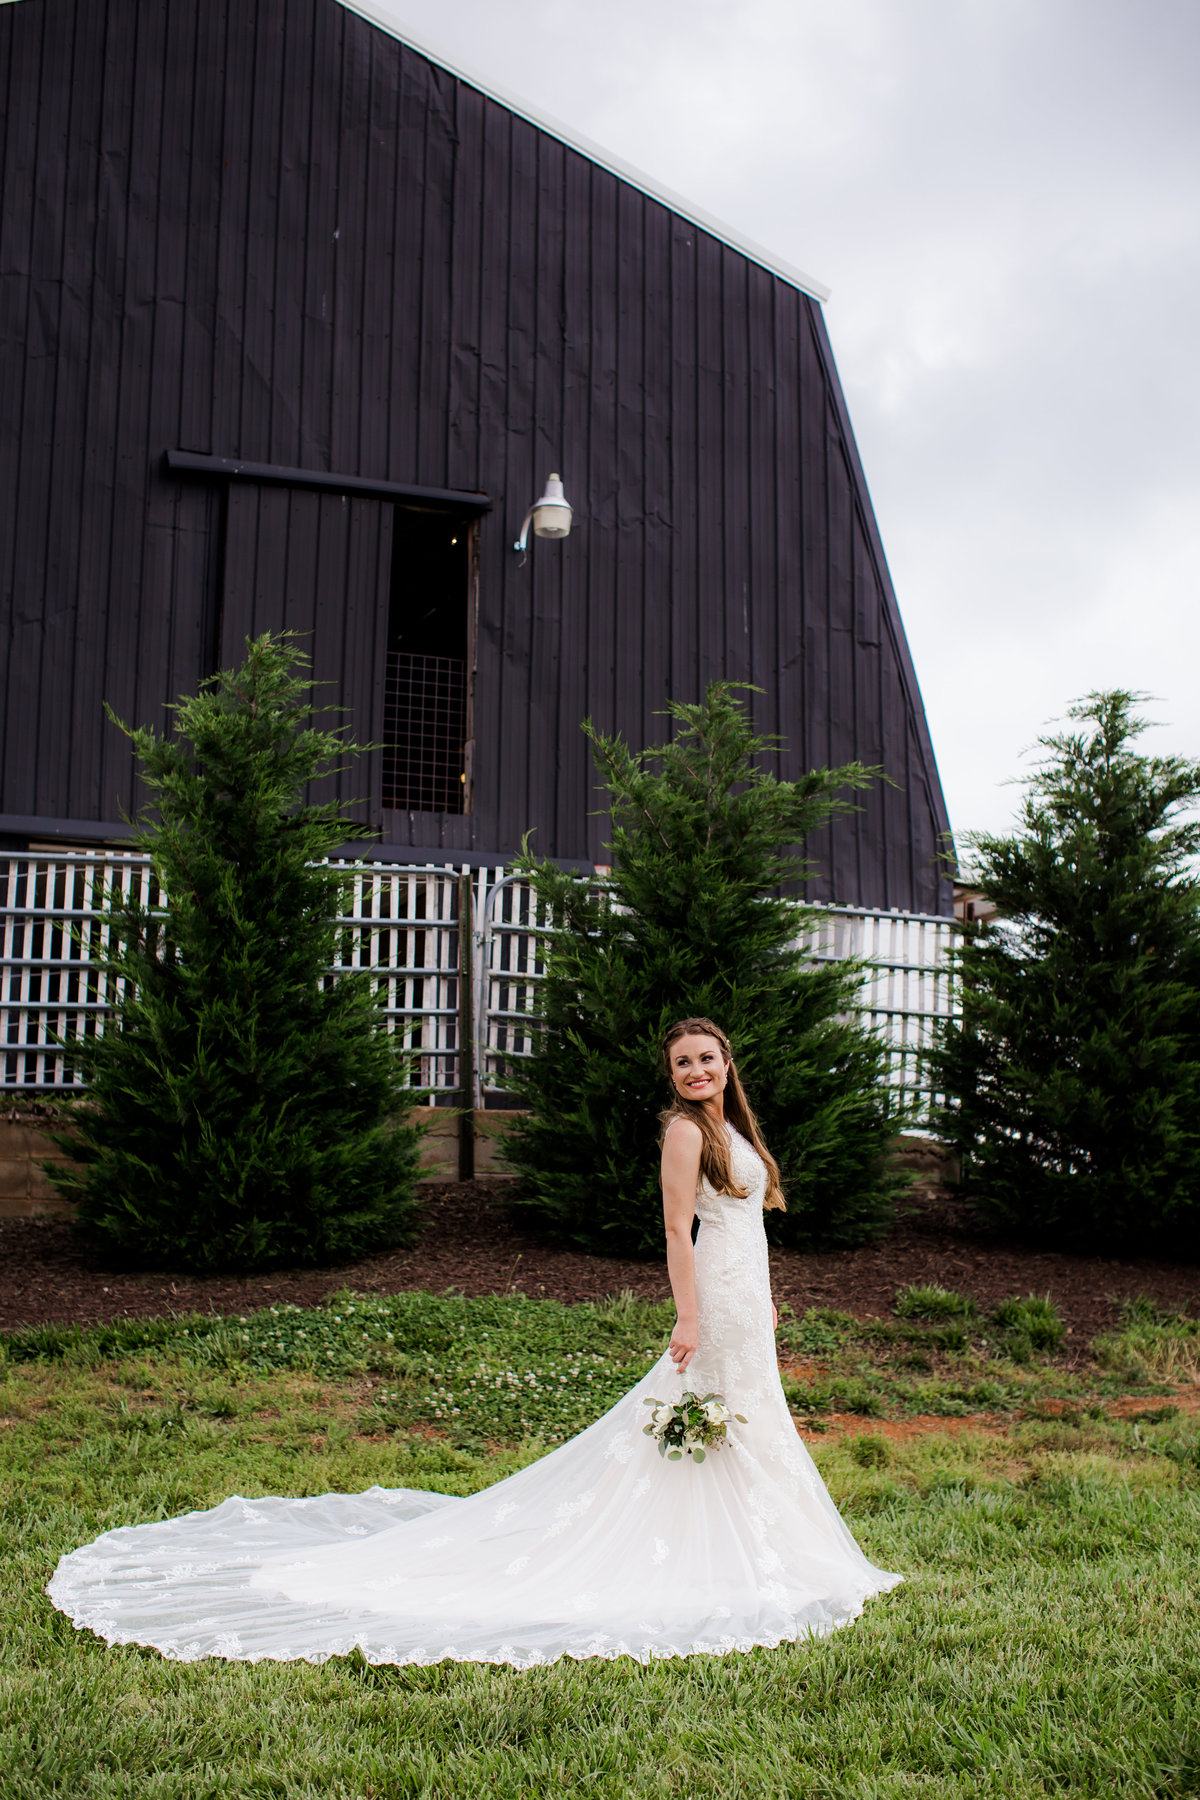 Nsshville Bride - Nashville Brides - The Hayloft Weddings - Tennessee Brides - Kentucky Brides - Southern Brides - Cowboys Wife - Cowboys Bride - Ranch Weddings - Cowboys and Belles050